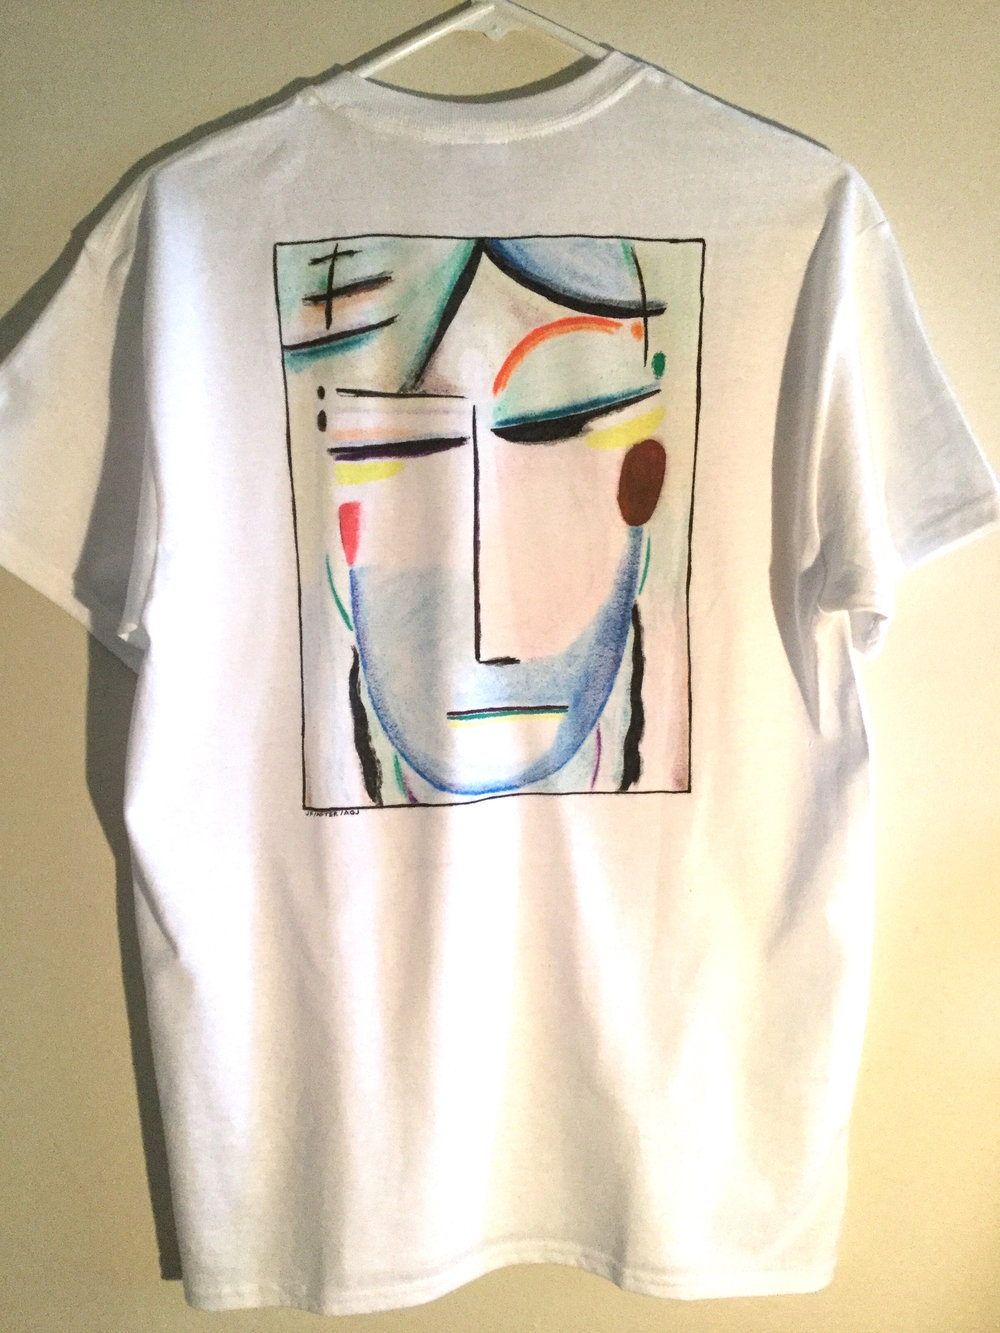 This is a completely original shirt I made by special request, not available in my Galleries. (From a painting by Jawlenski.)